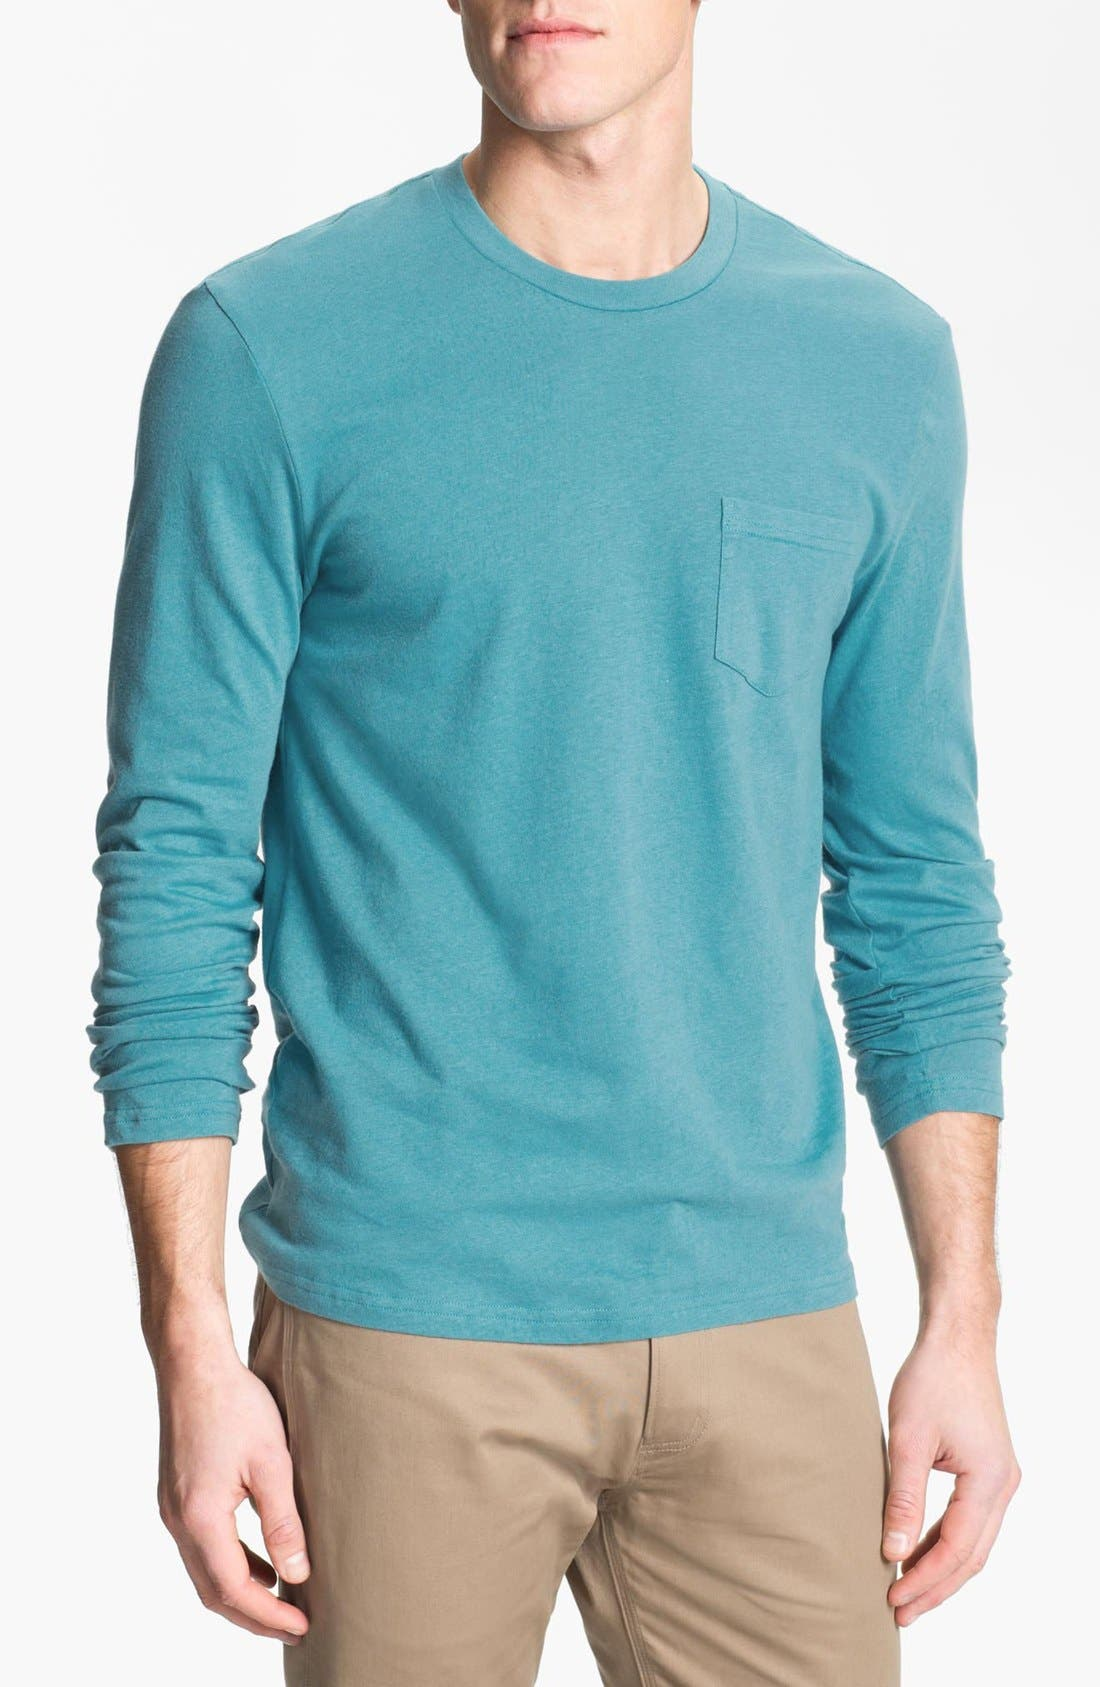 Alternate Image 1 Selected - The Rail Long Sleeve Pocket T-Shirt